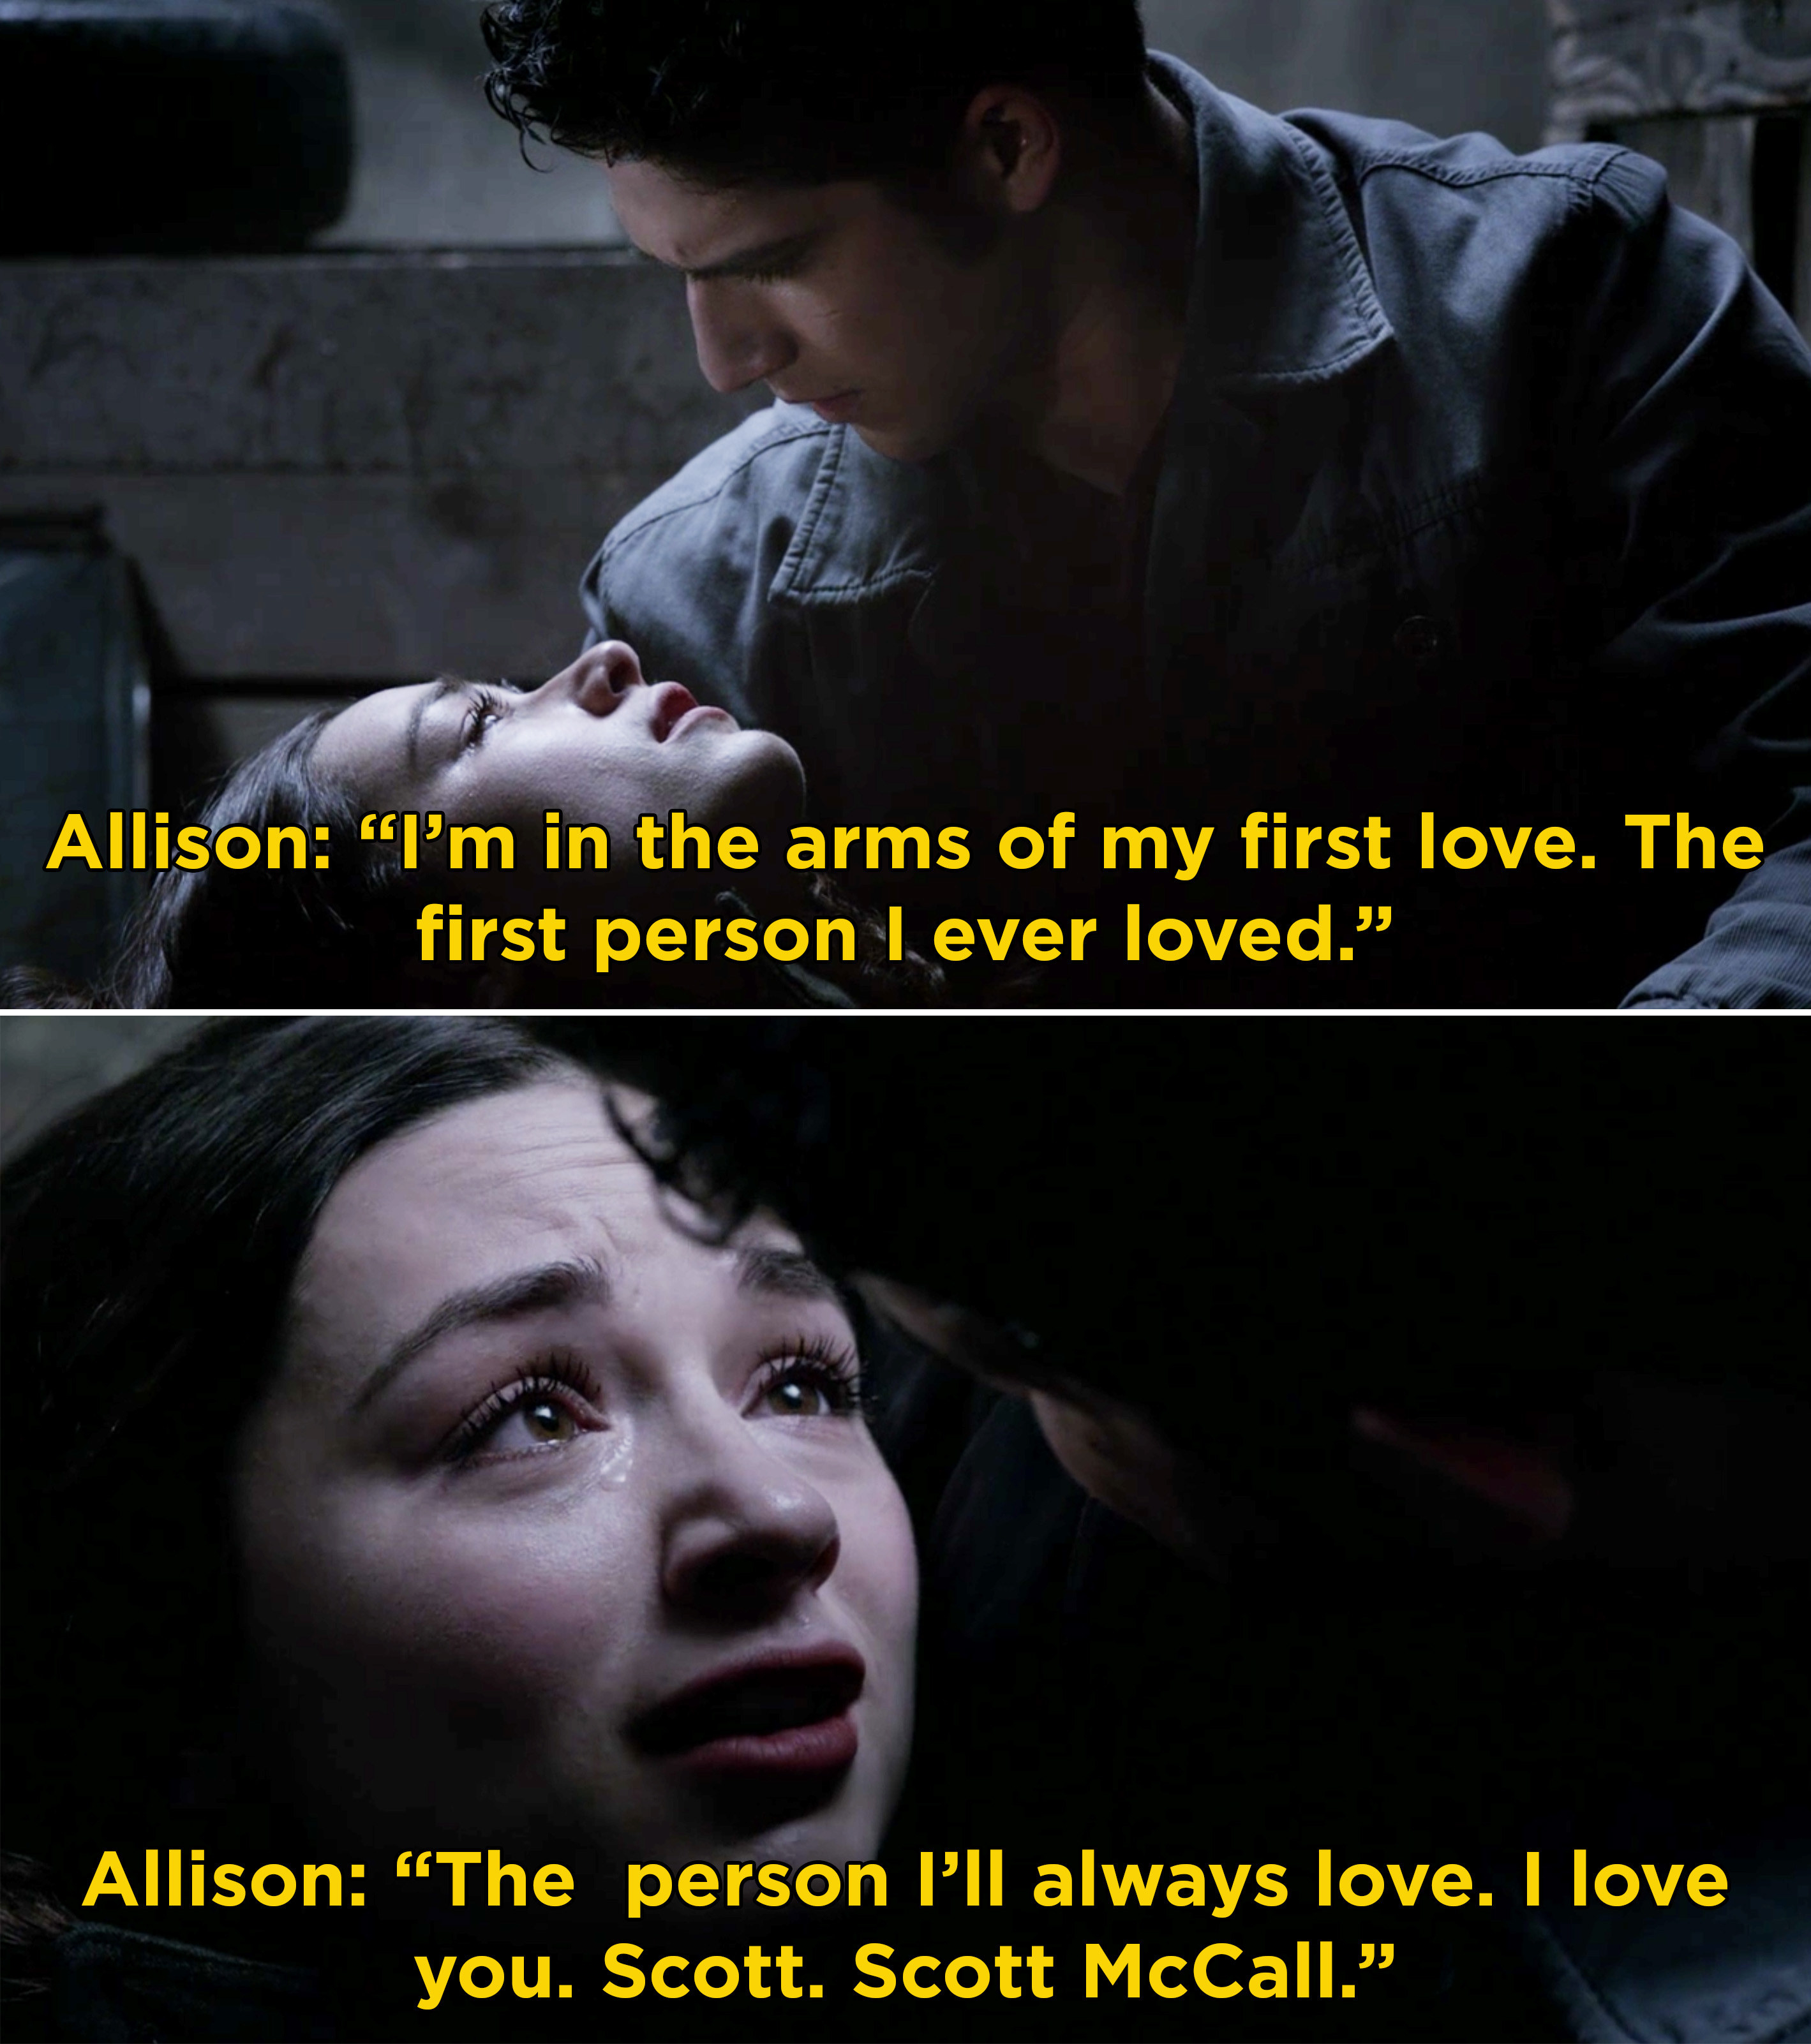 Allison dying in Scott's arms and telling him that she will always love him